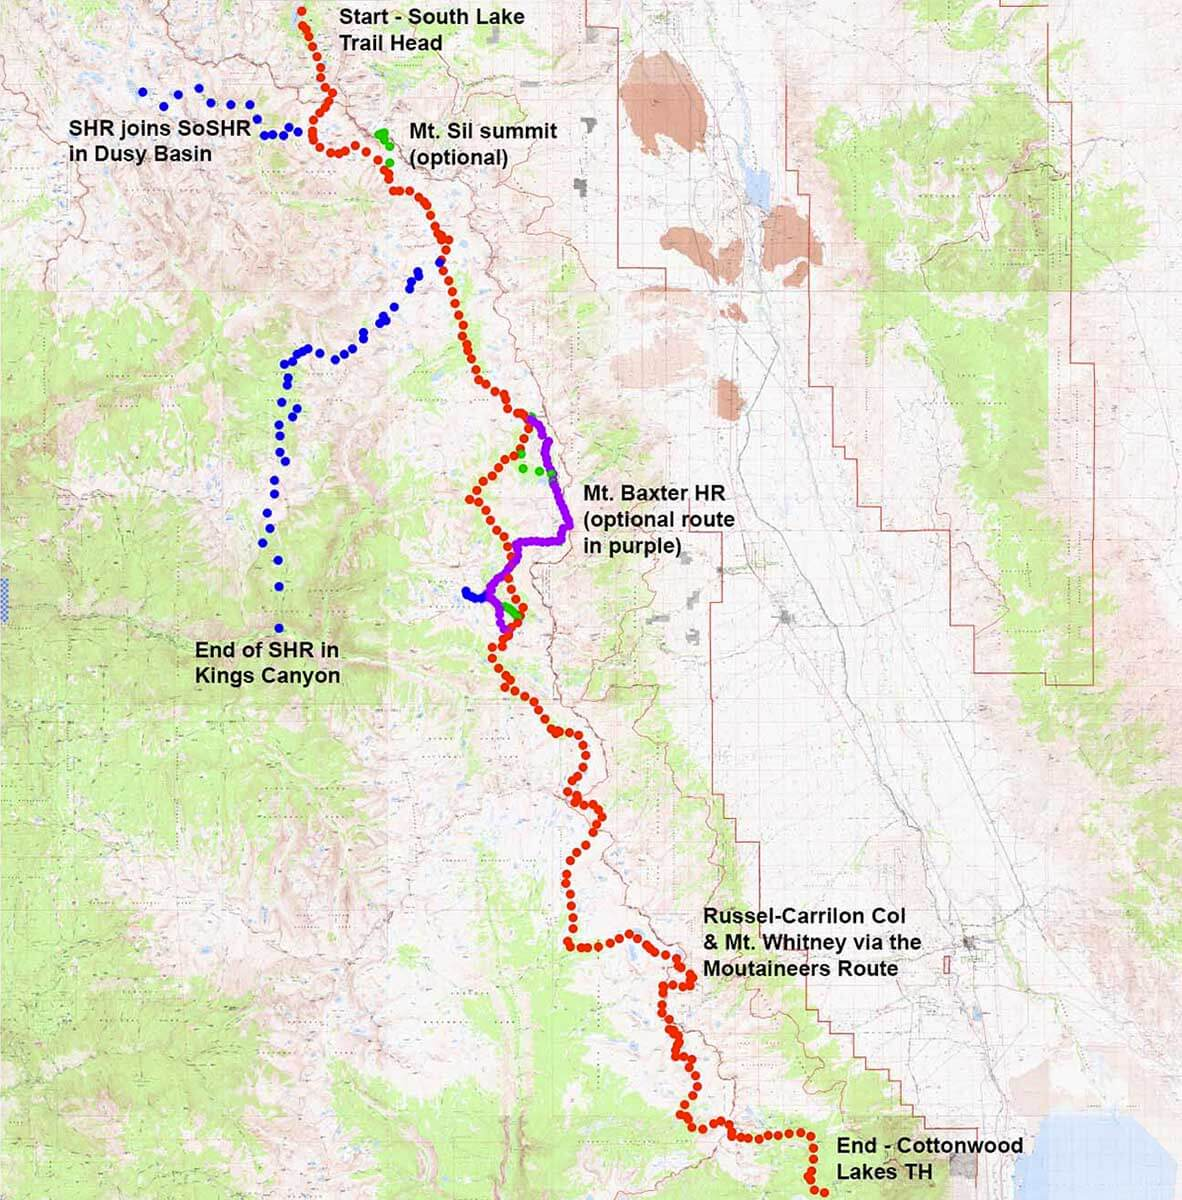 Southern Sierra High Route - an alternative to the JMT ... on map of sequoia national park, map of sierra nevada, map of camino de santiago, map of cherokee national forest, map of ansel adams wilderness, map of great western loop, map of tulare county, map of the house, map of san joaquin river, map of orange river, map of trans-siberian railway, map of taft point, map of roan mountain, map of california, map of state high points, map of 110 freeway, map of tenaya lake, map of nevada fall, map of us state parks, map of mountain loop highway,